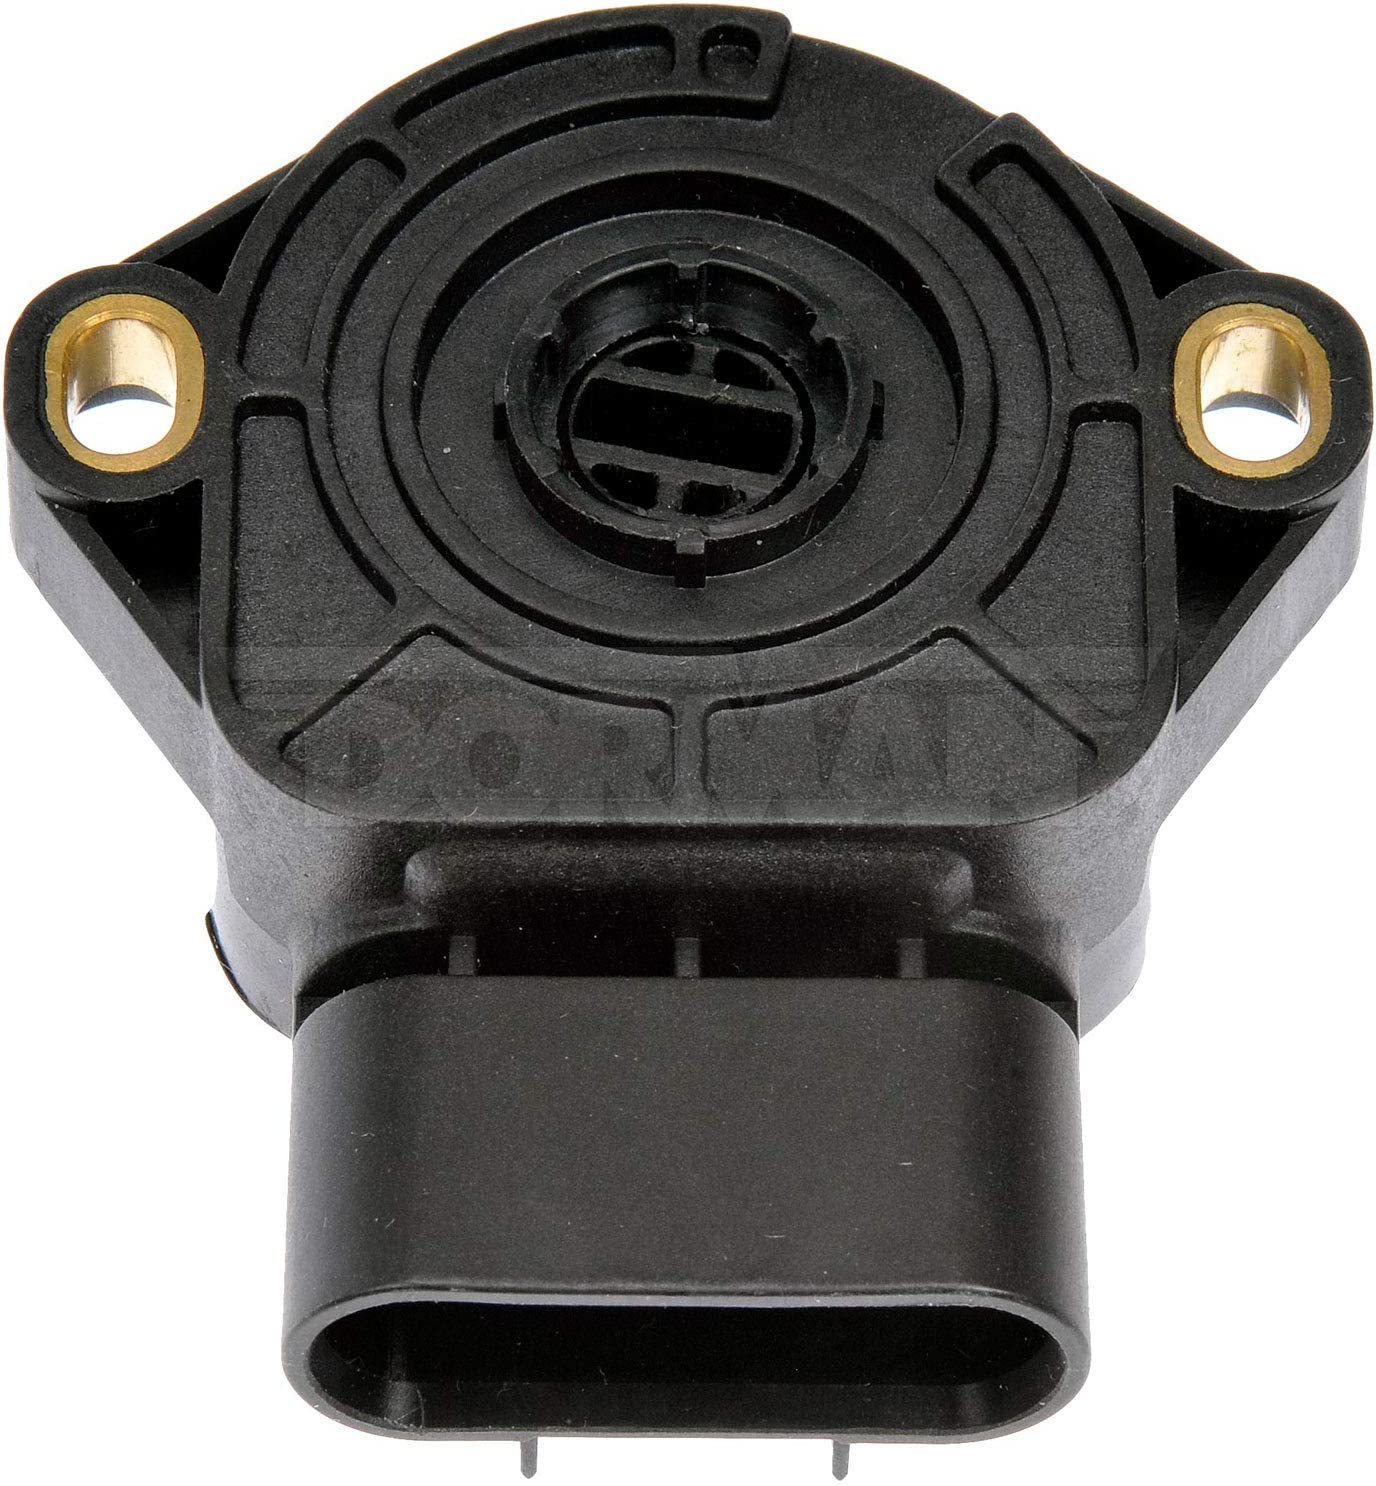 Dorman Oe Solutions 699 139 Accelerator Pedal Position Sensor Switches Relays Replacement Parts